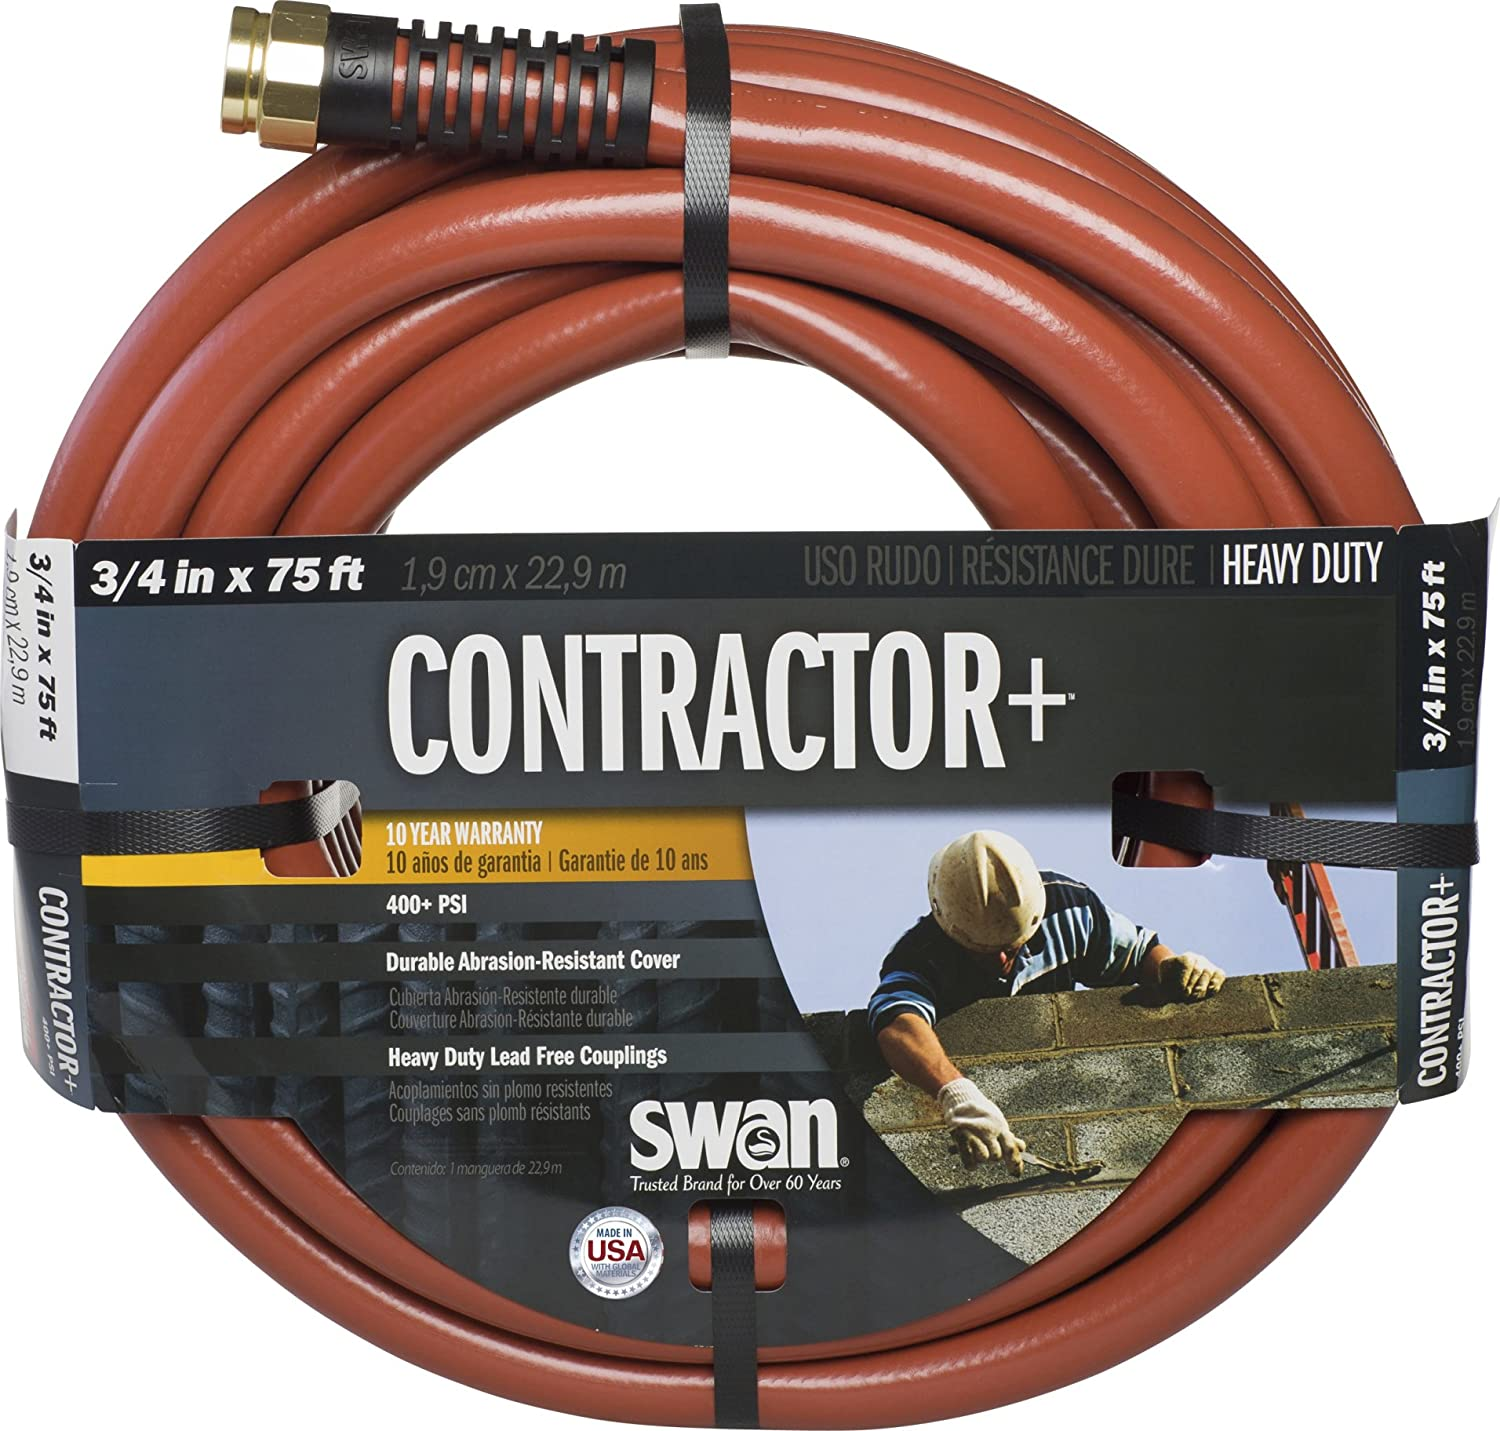 Swan Products SNCG34075 CONTRACTOR+ Commercial Duty Clay Water Hose with Crush Proof Couplings 75' x 3/4